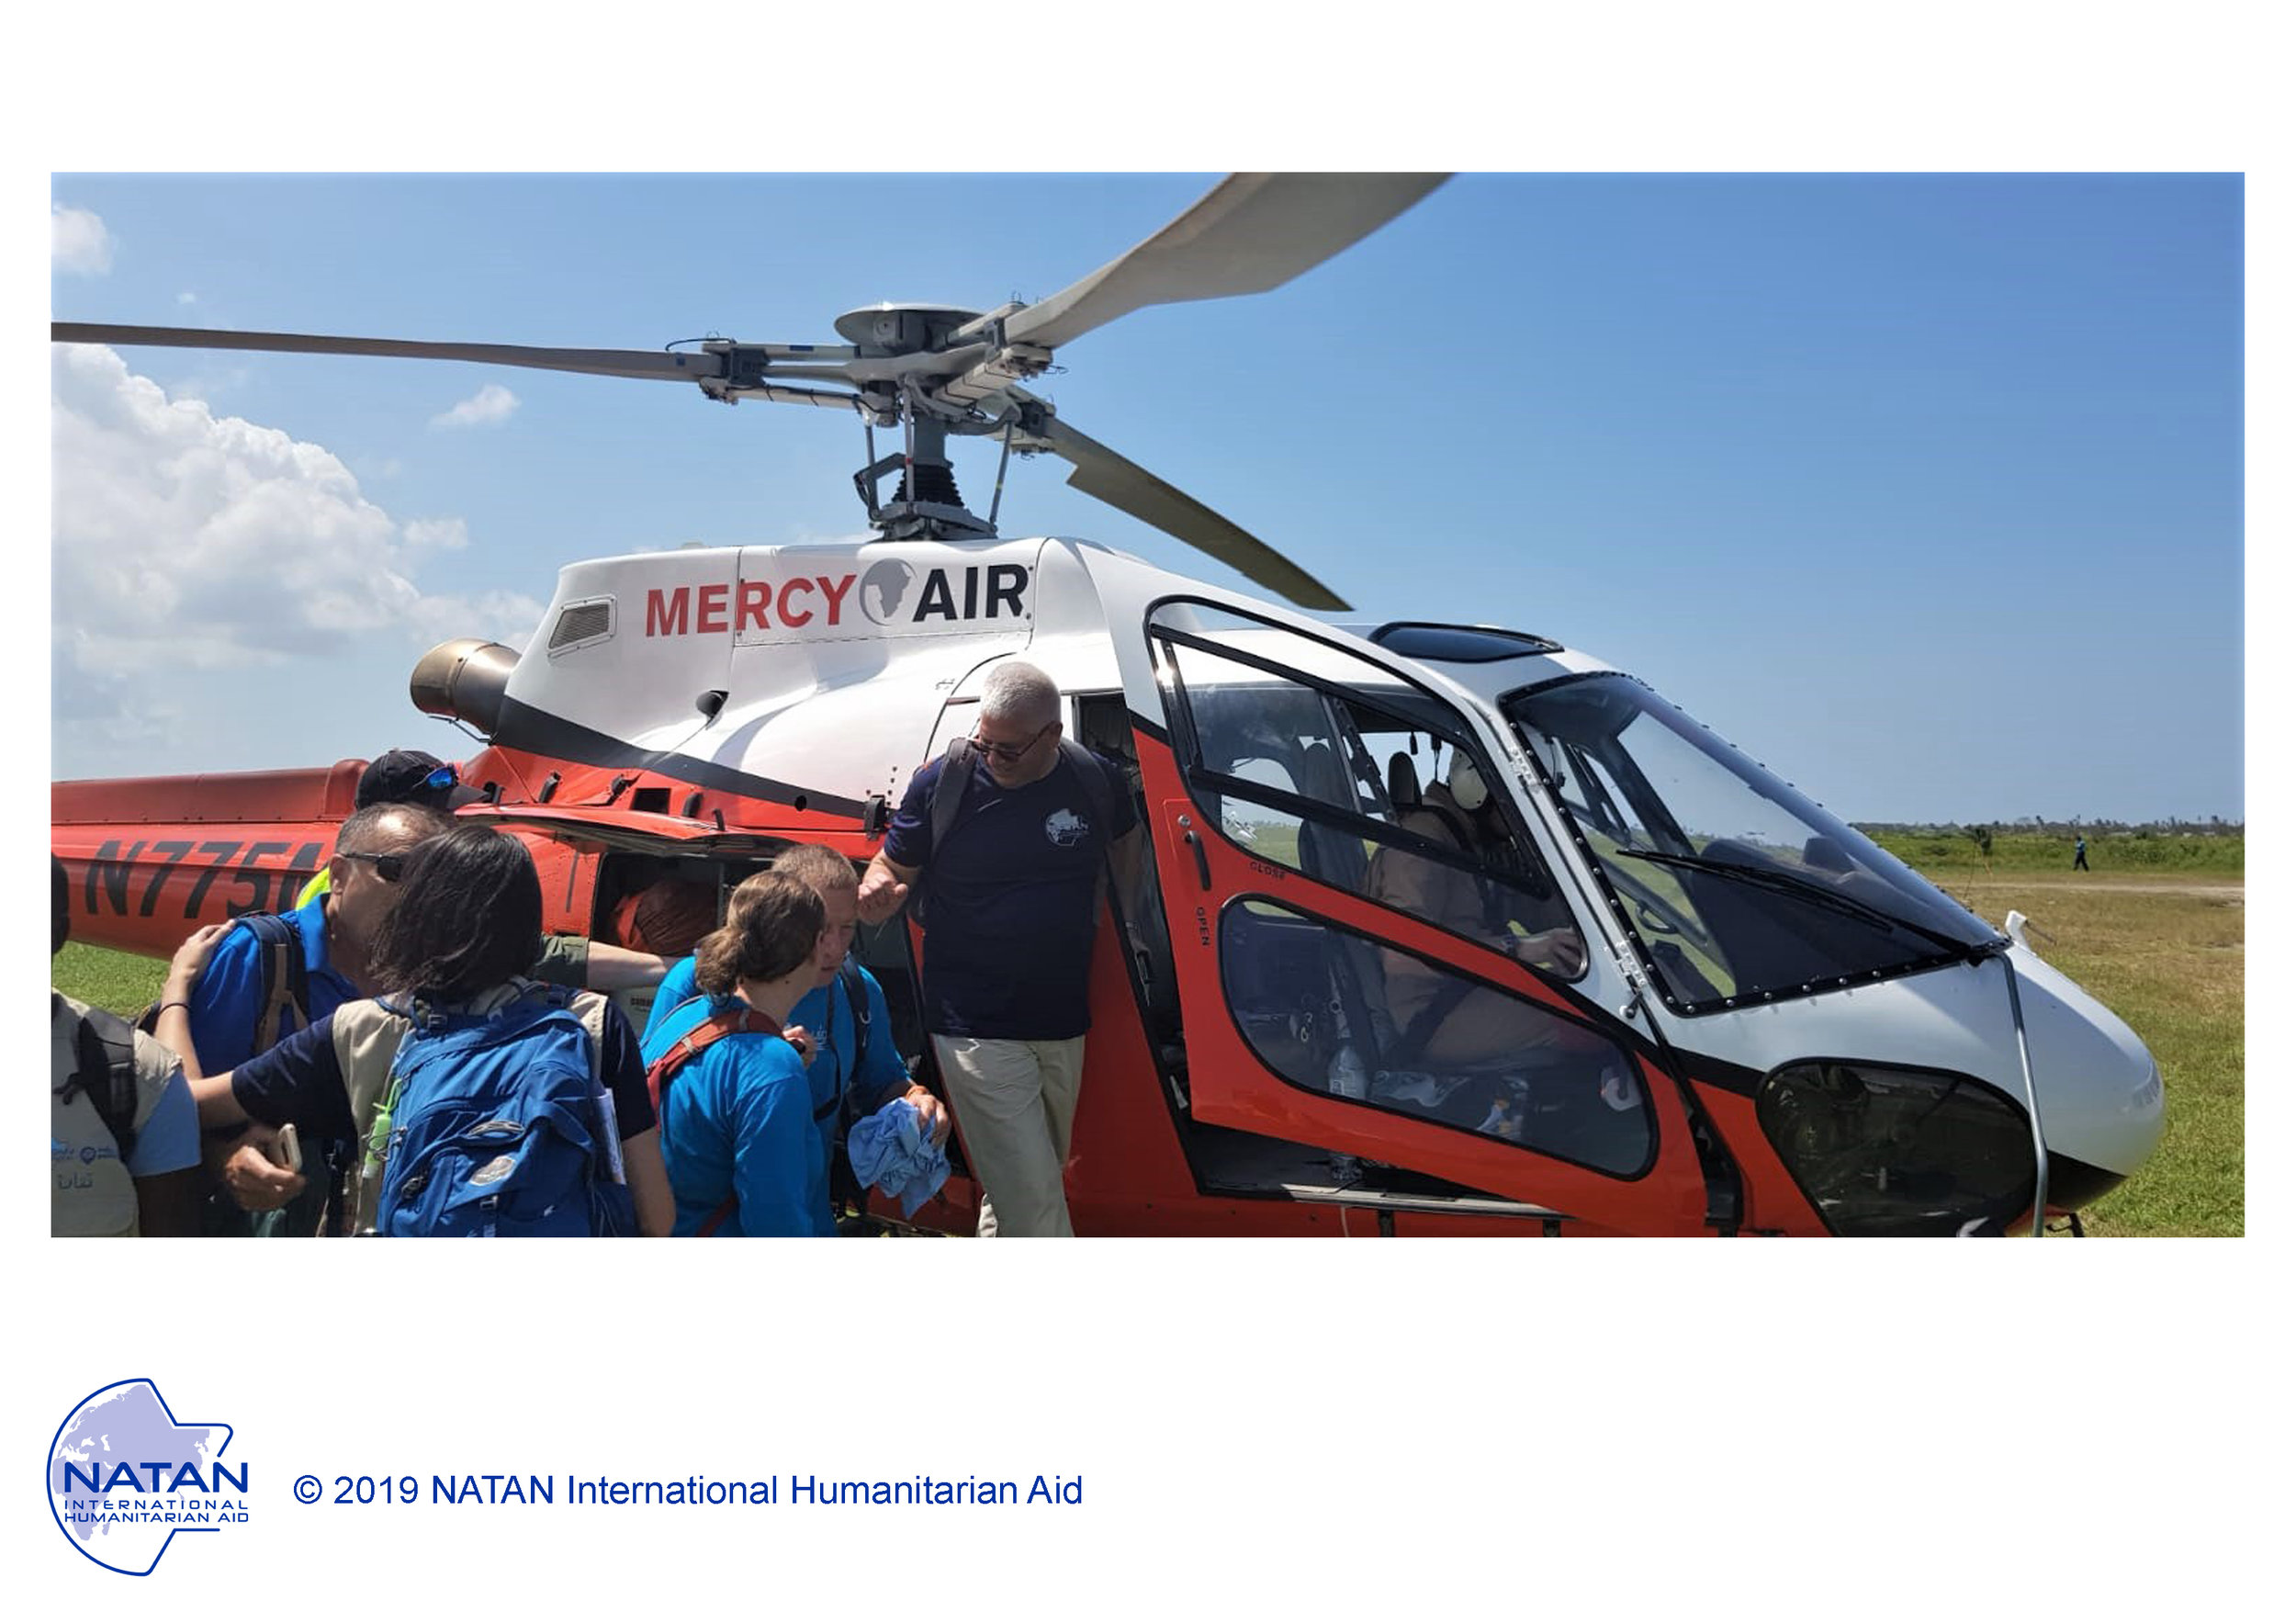 mozambique 2019 - natan team bording helicopter flown by partner, mercy air, to set up field clinics in remote locatinos follwoing cyclone idai